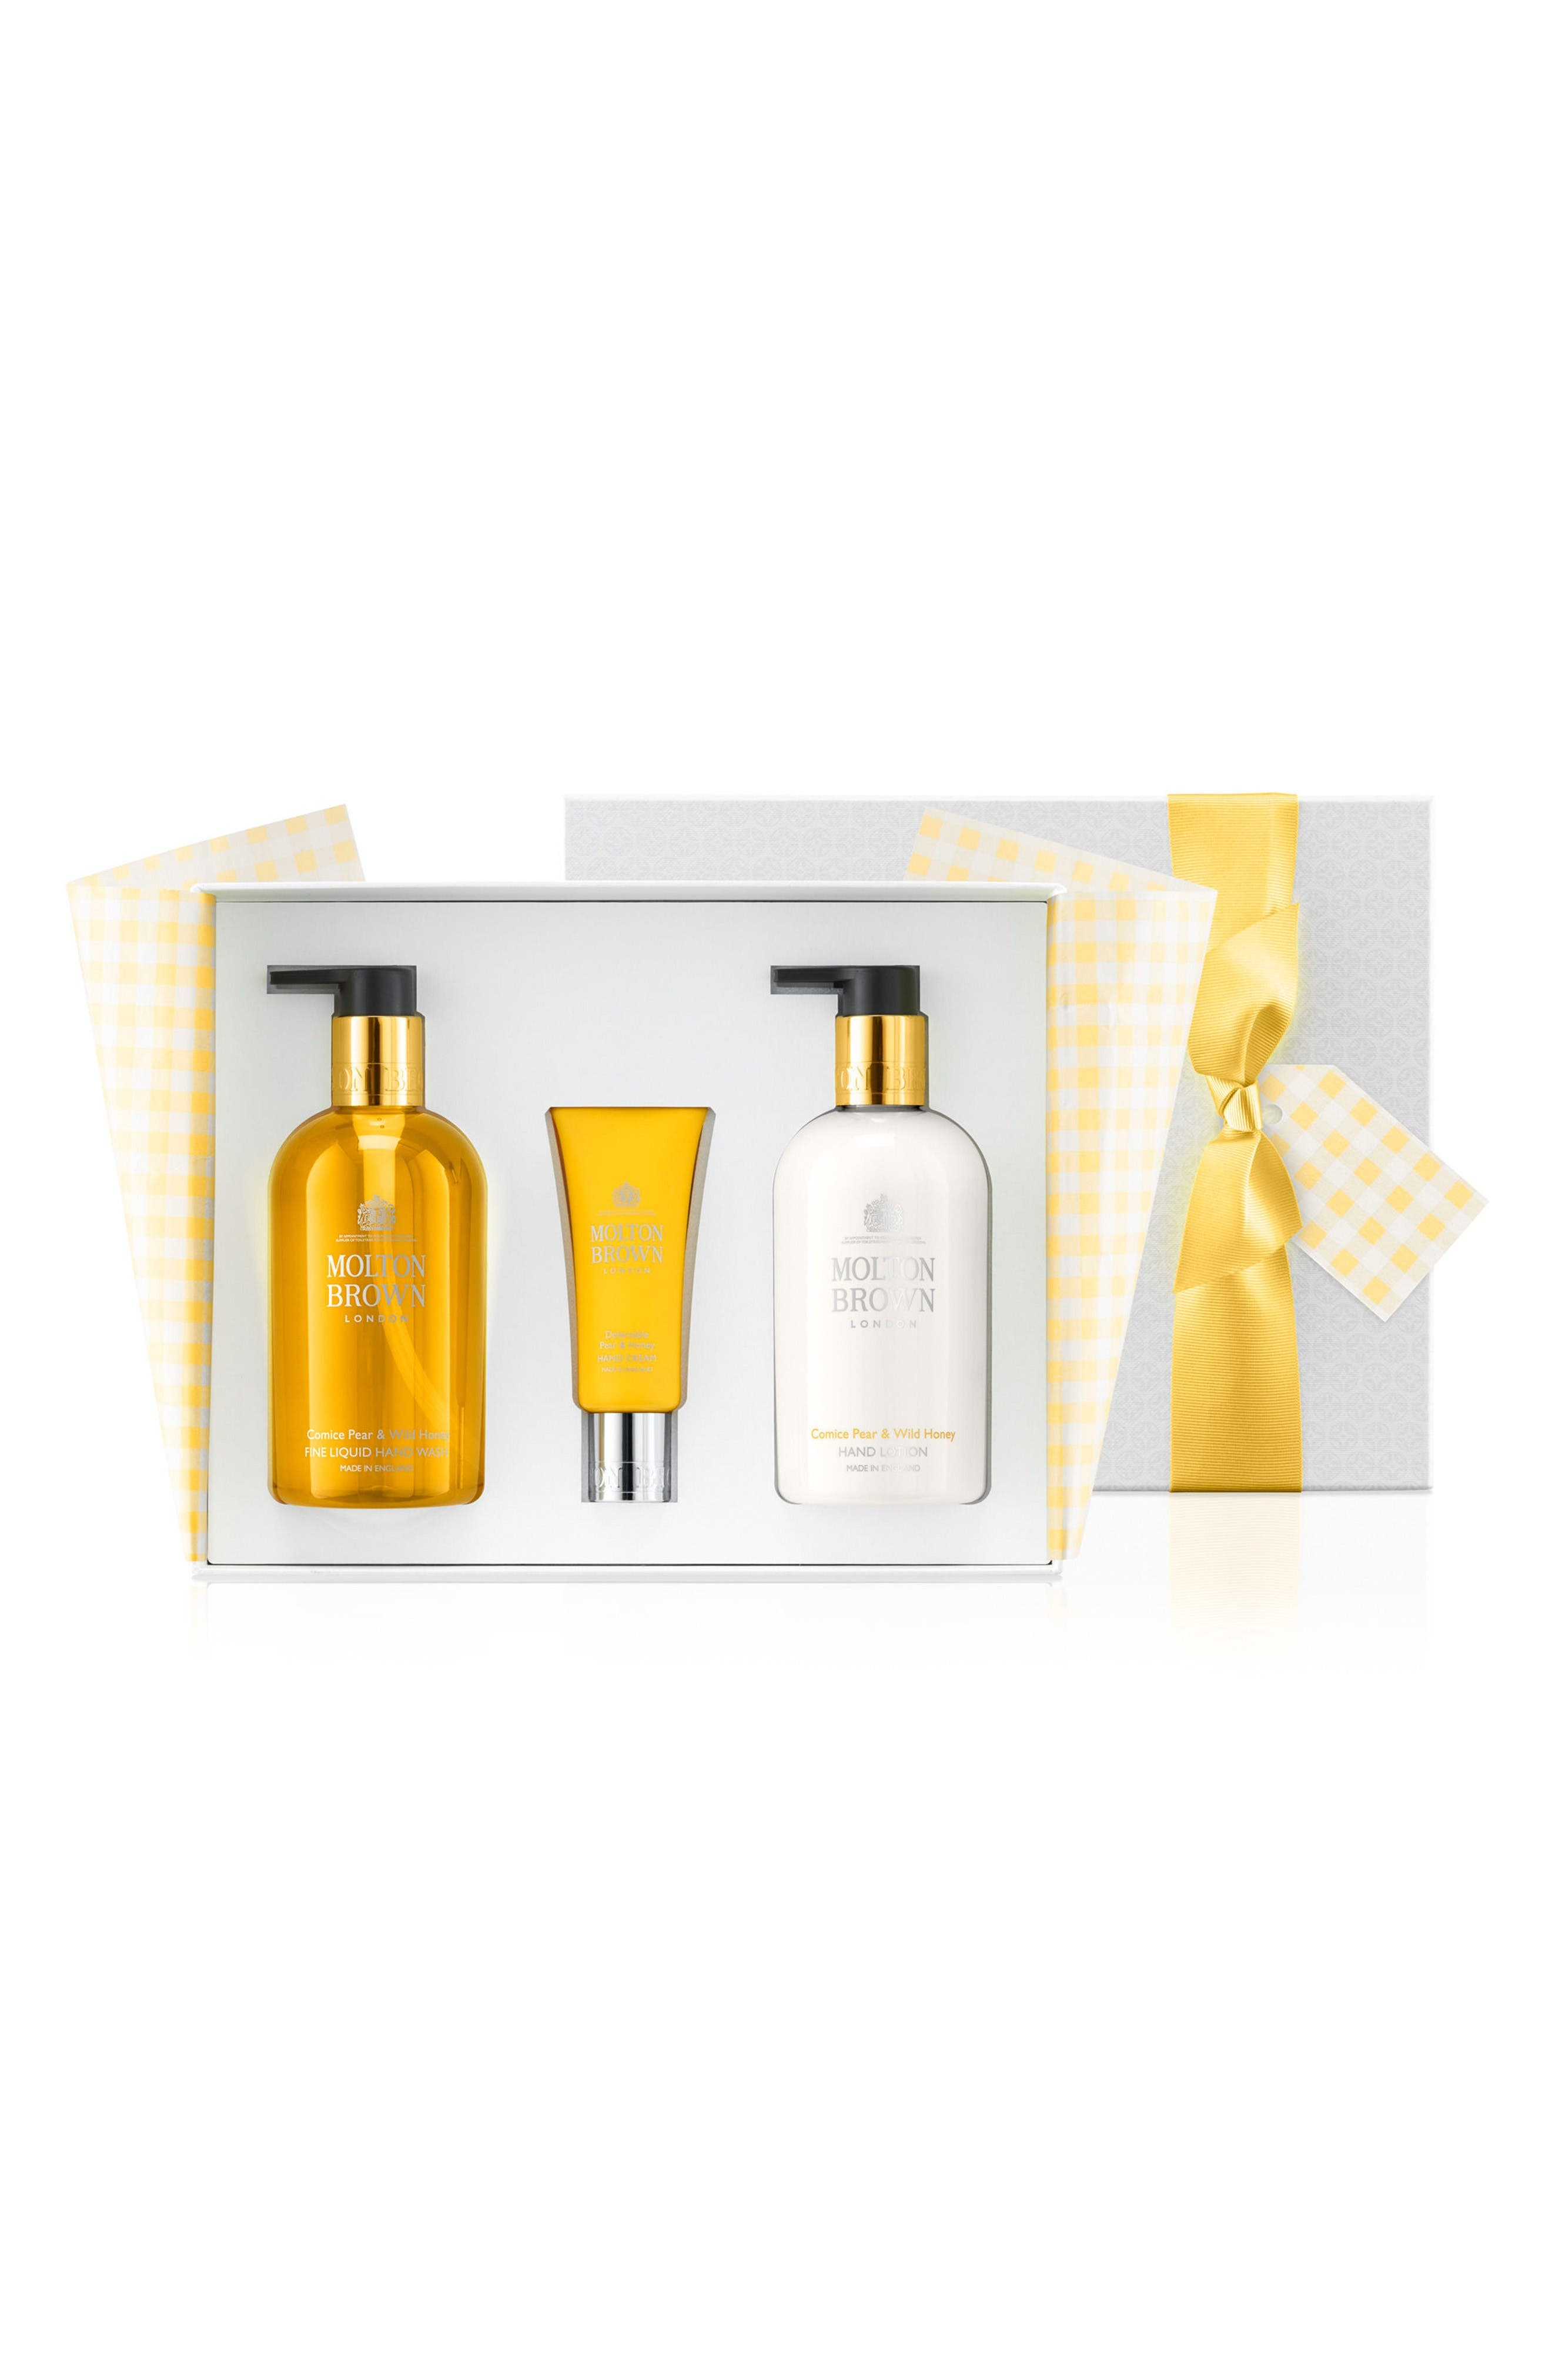 Main Image - MOLTON BROWN London Comice Pear & Wild Honey Hand Set ($77 Value)